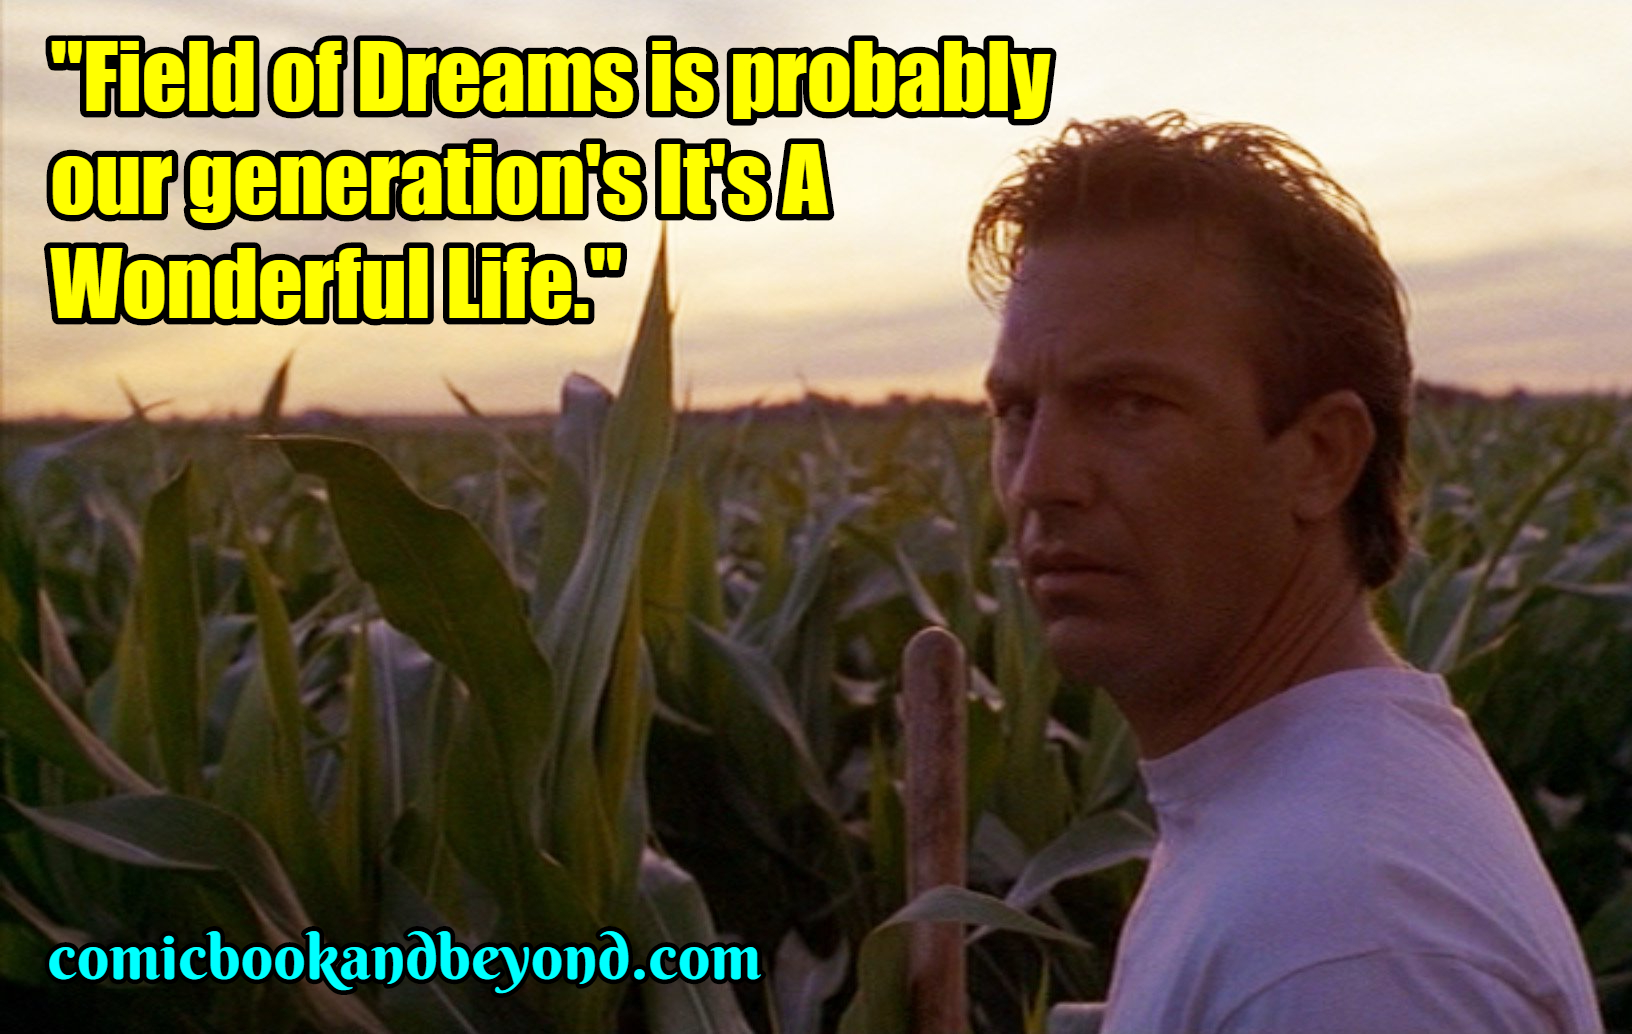 Field of Dreams' POPULART quotes (3)